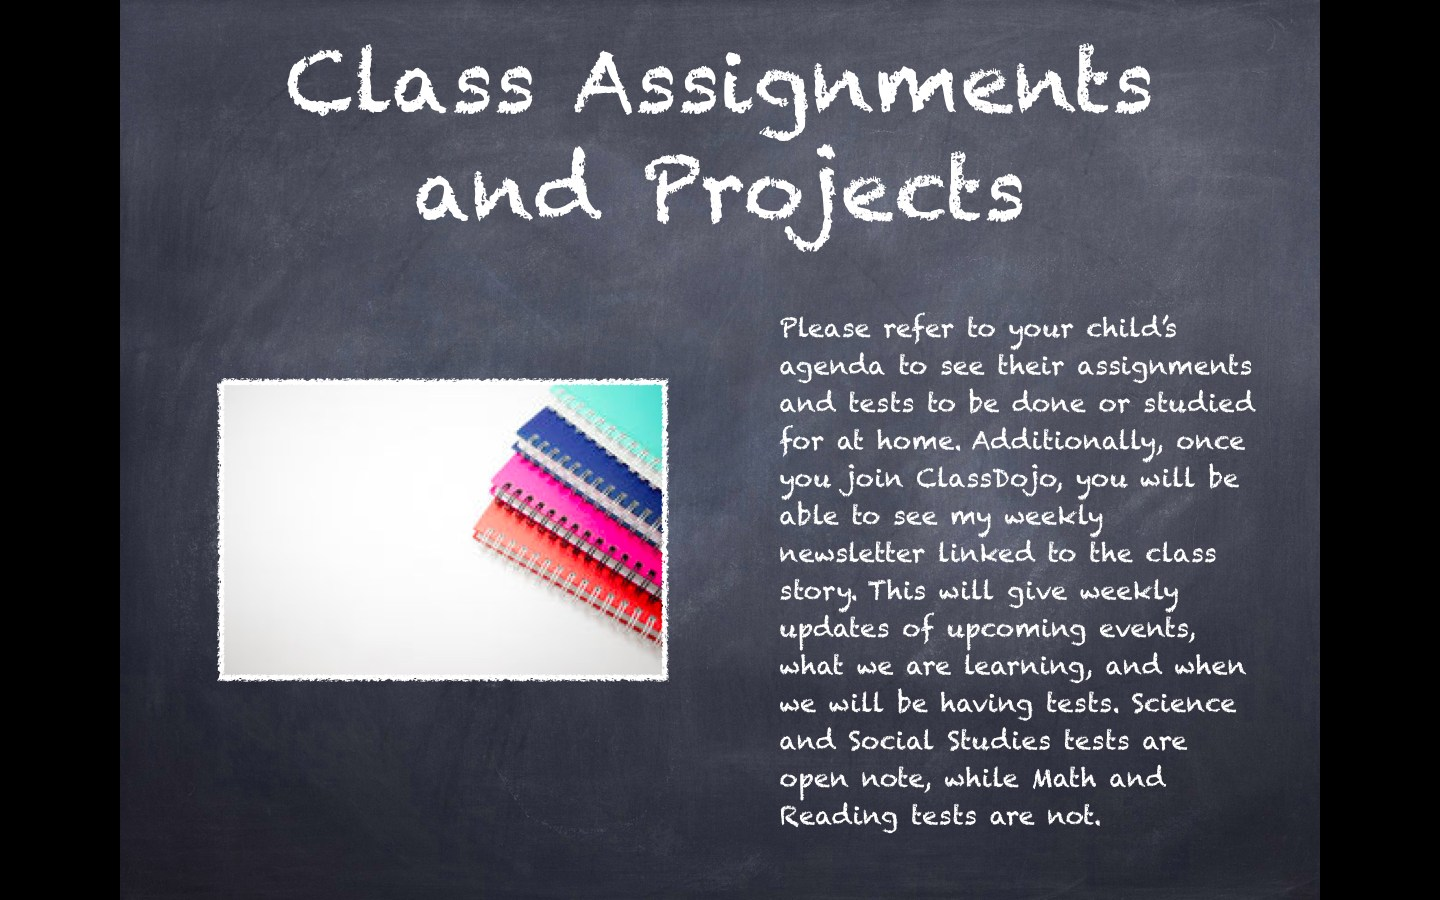 Class Assignments and Projects: Please refer to your child's agenda to see their assignments and tests to be done or studied for at home. Additionally, once you join ClassDojo, you will be able to see my weekly newsletter linked to the class story. This will give weekly updates of upcoming events, what we are learning, and when we will be having tests. Science and Social Studies tests are open note, while Math and Reading tests are not.